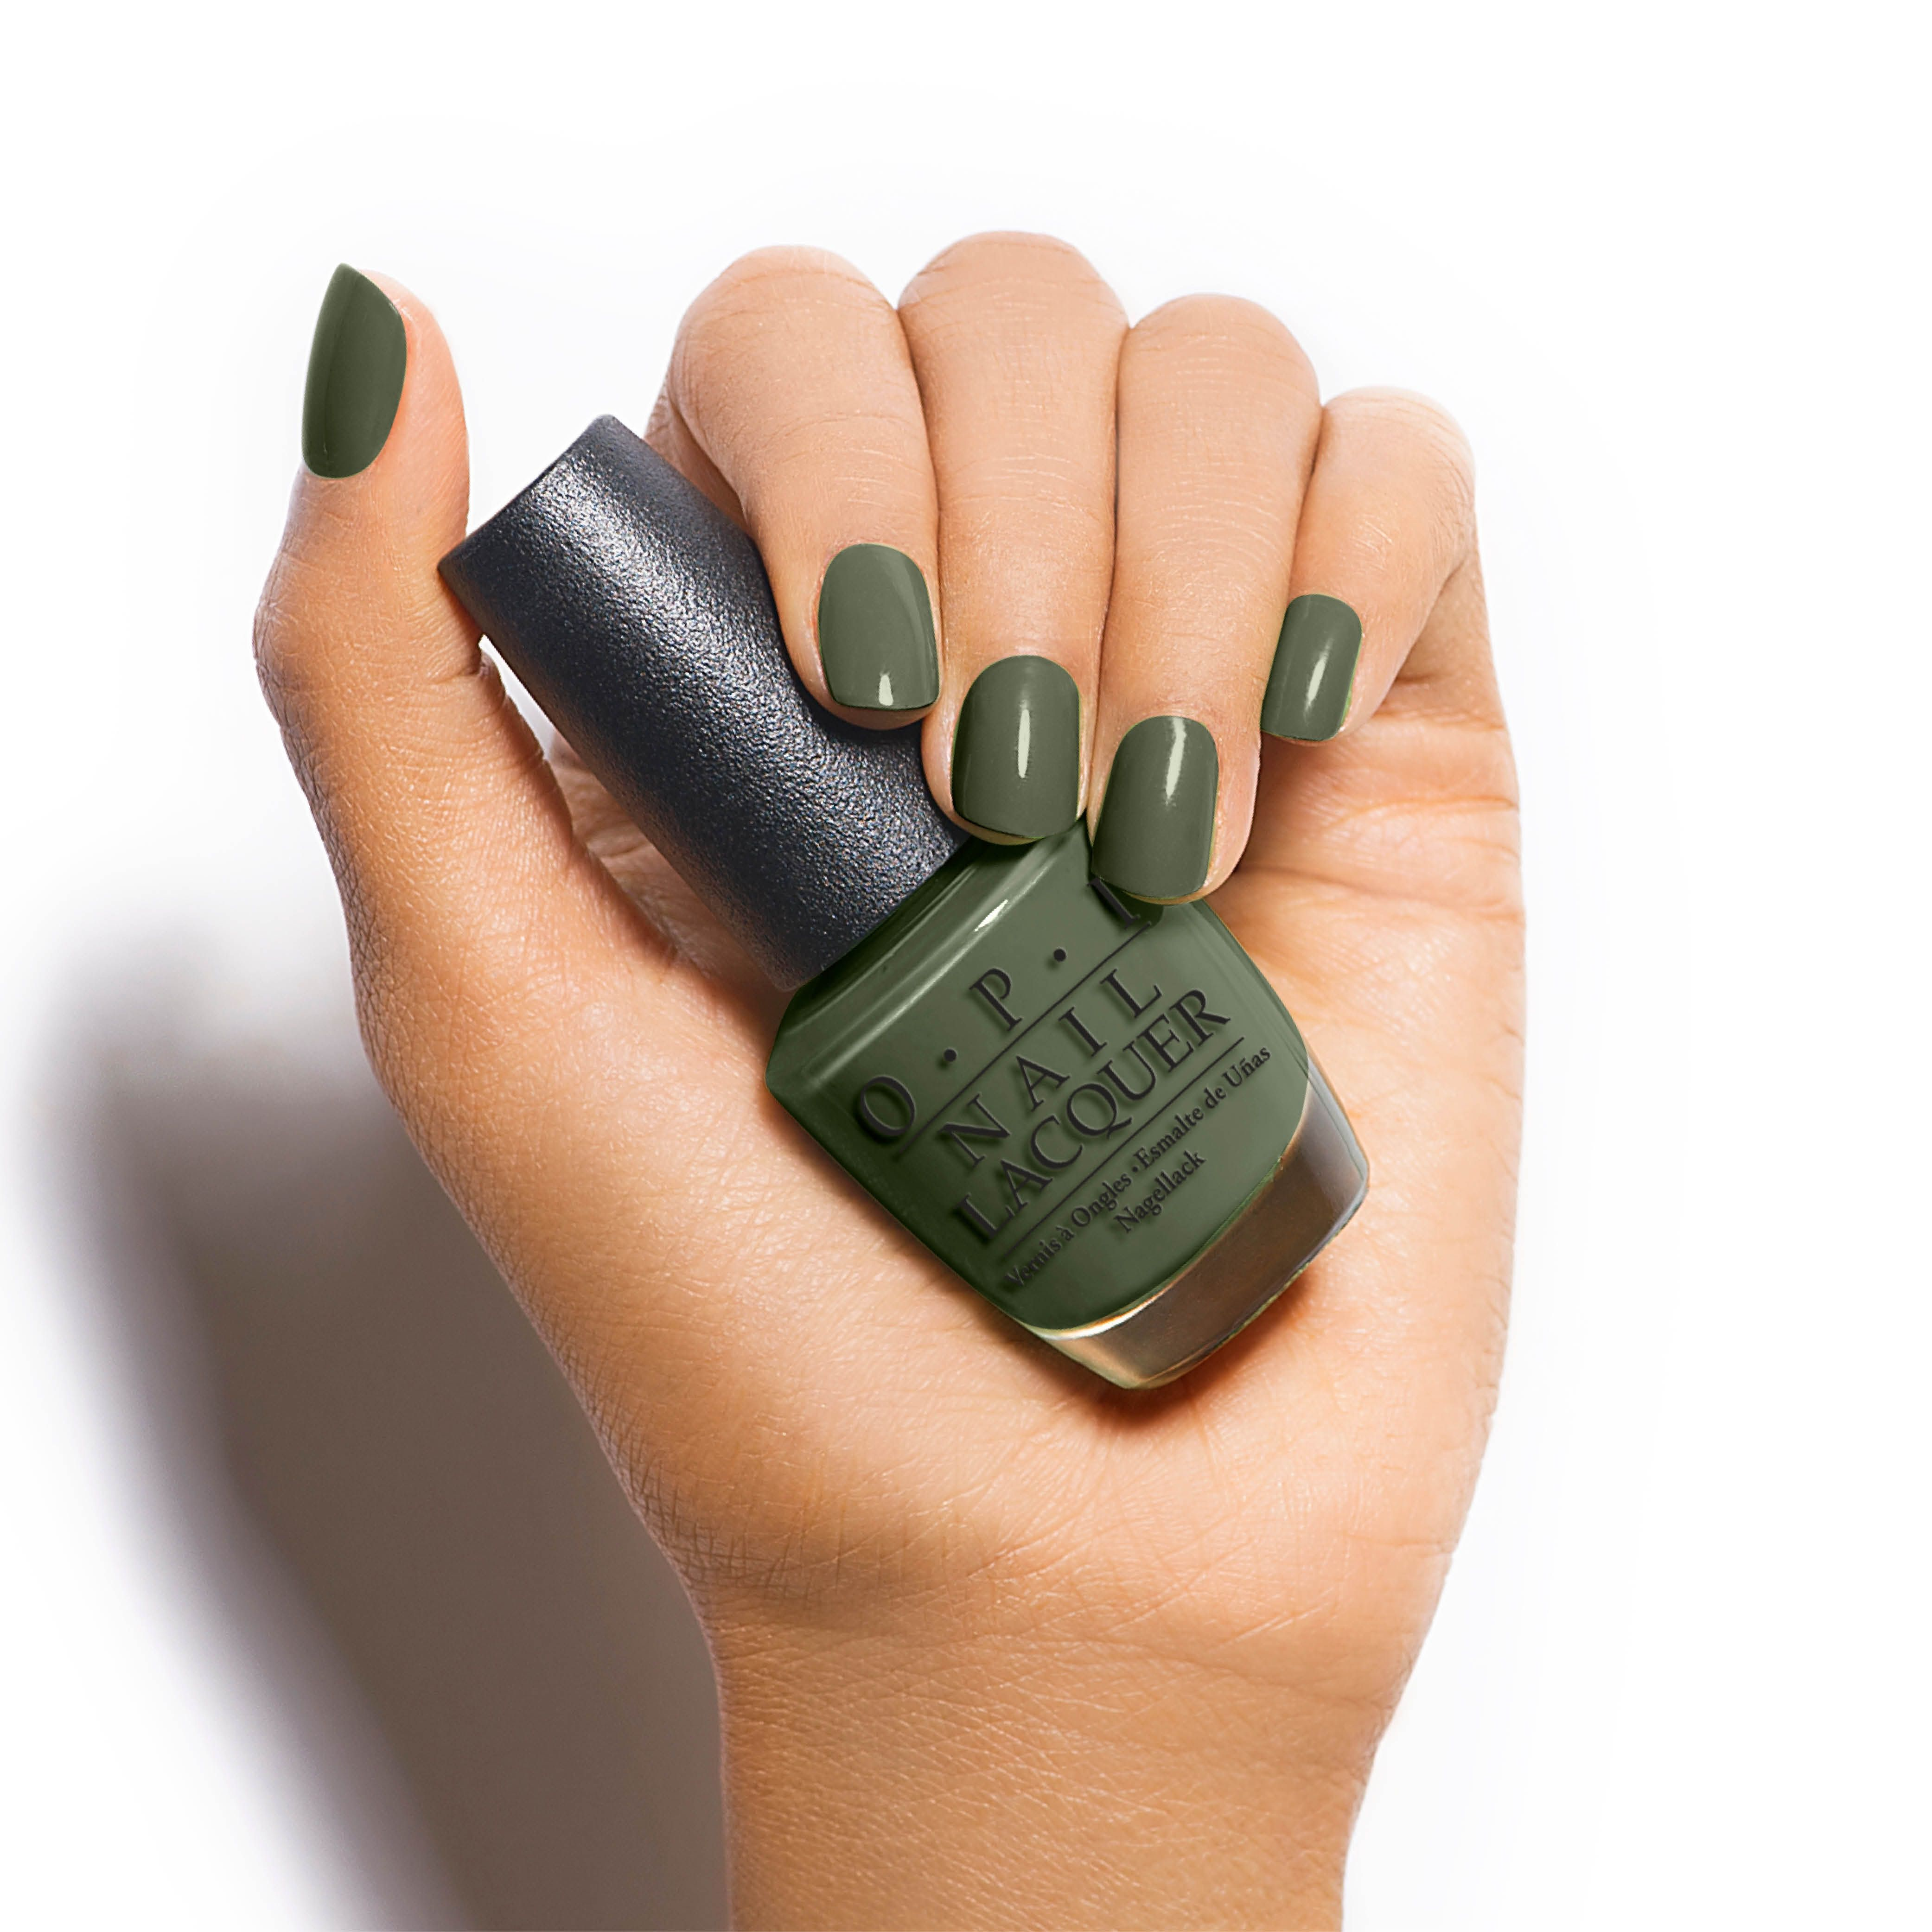 How To Make Olive Green Nail Polish: The First Lady Of Nails: Command The Political